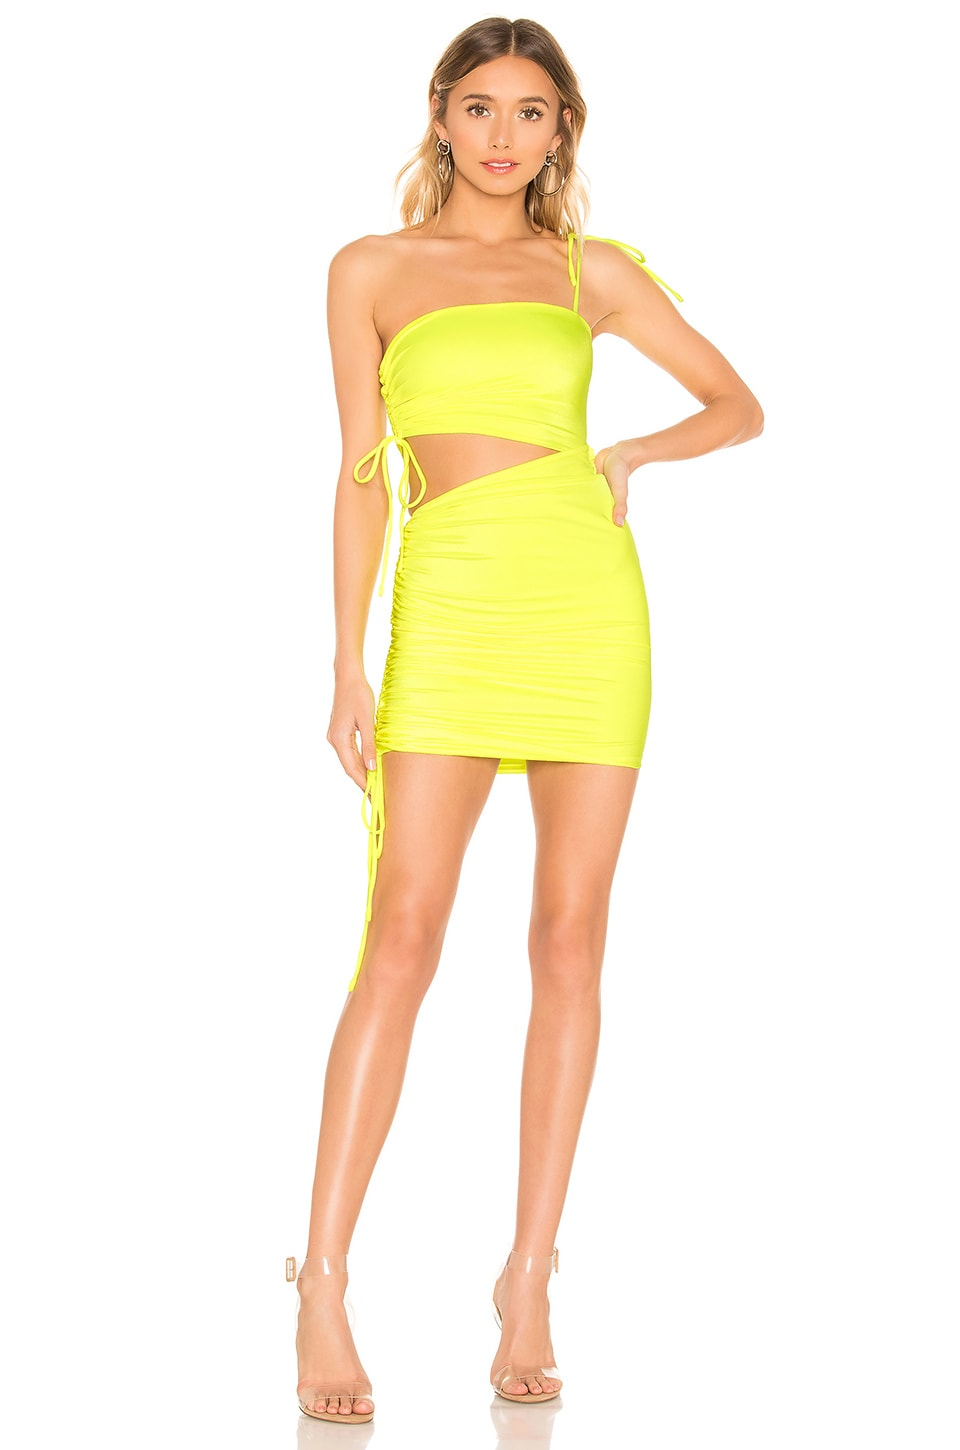 h:ours Piper Mini Dress in Neon Yellow